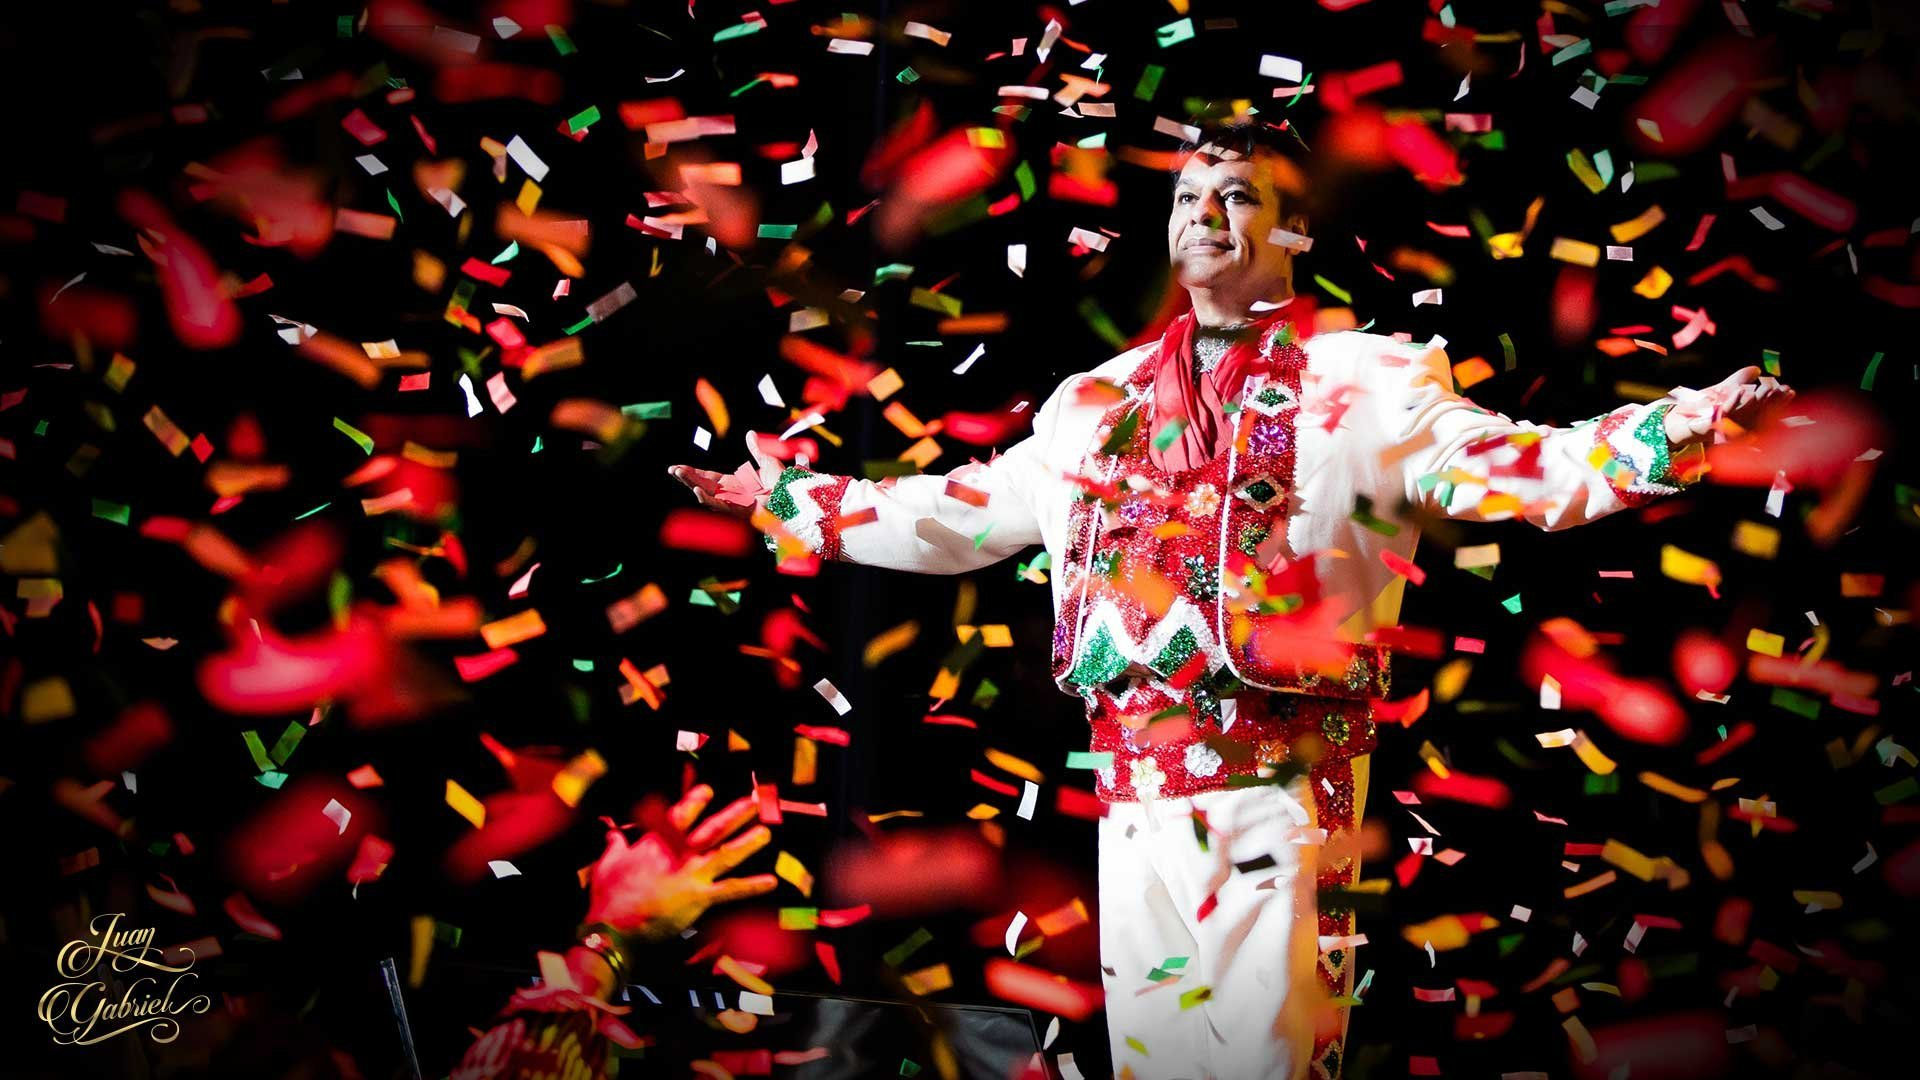 Juan Gabriel, the prolific Latin American music icon, died of natural causes in Santa Monica, California, on Sunday August 28, 2016 morning, Los Angeles County Coroner spokeswoman Selena Barros said.